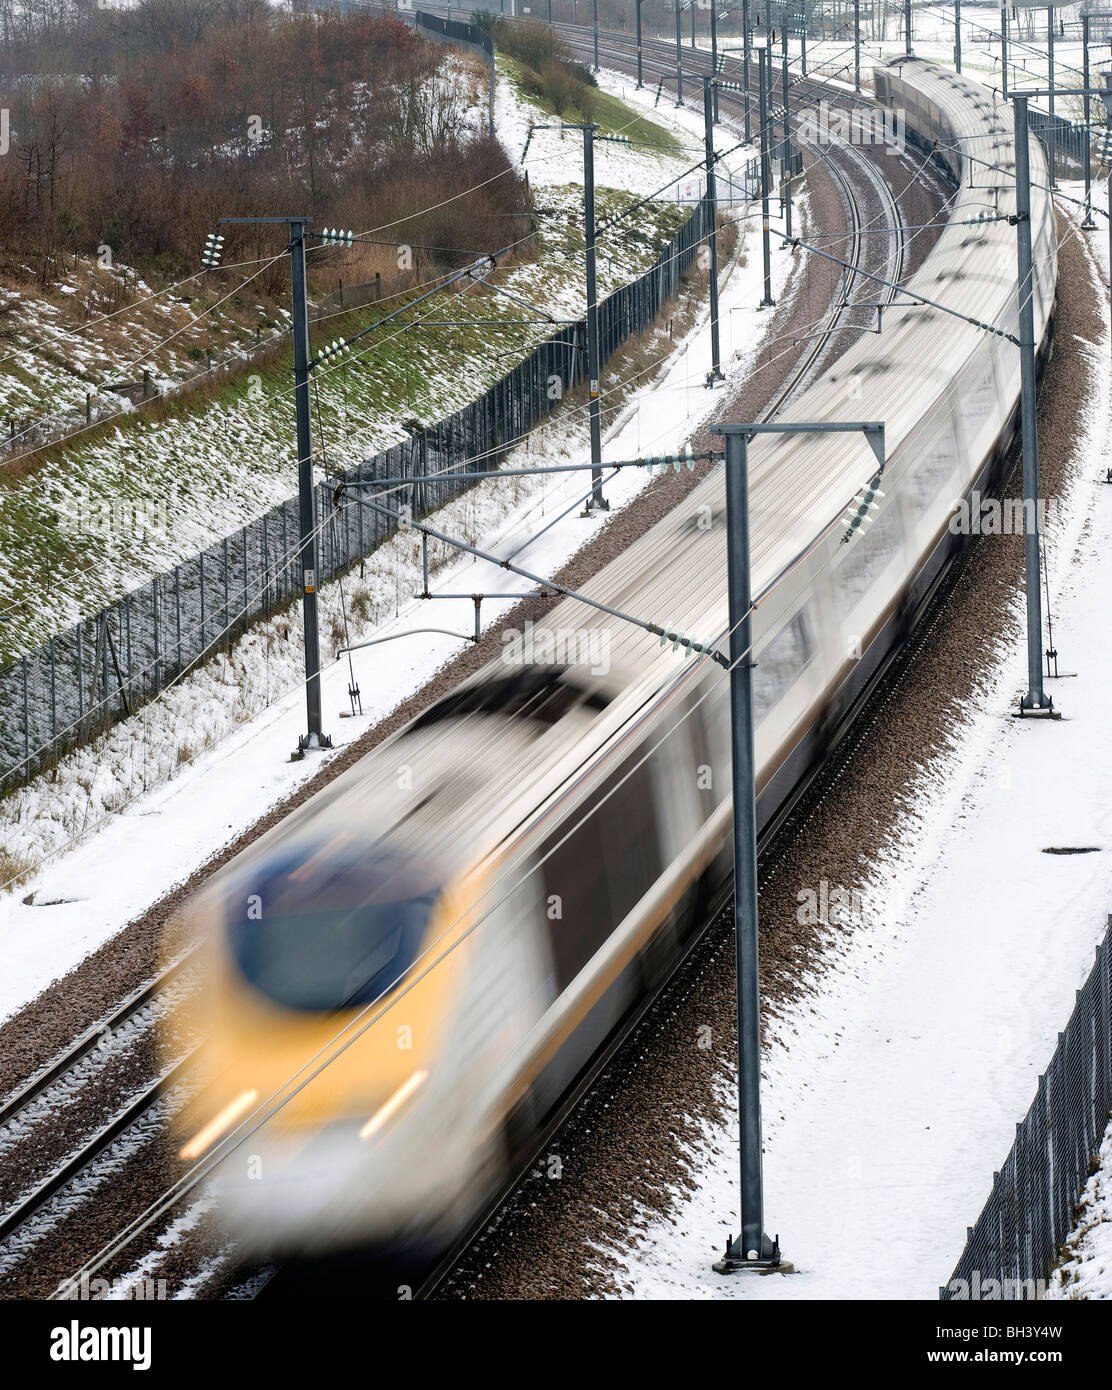 Eurostar on the High Speed 1 rail line through Kent in the snow - Stock Image